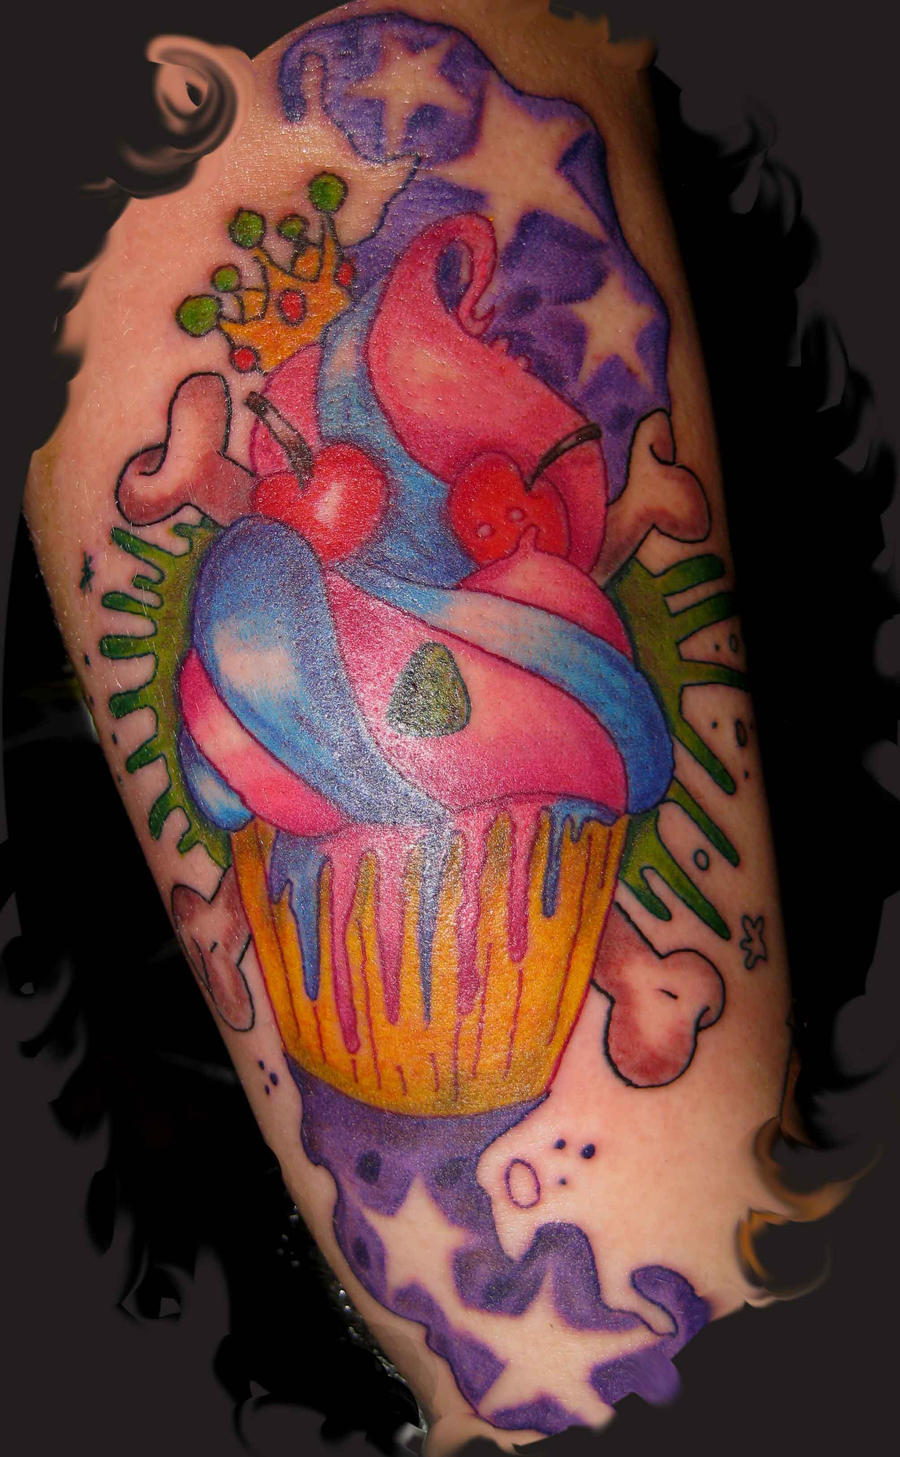 evil cup cake tattoo by oldboot1 on DeviantArt